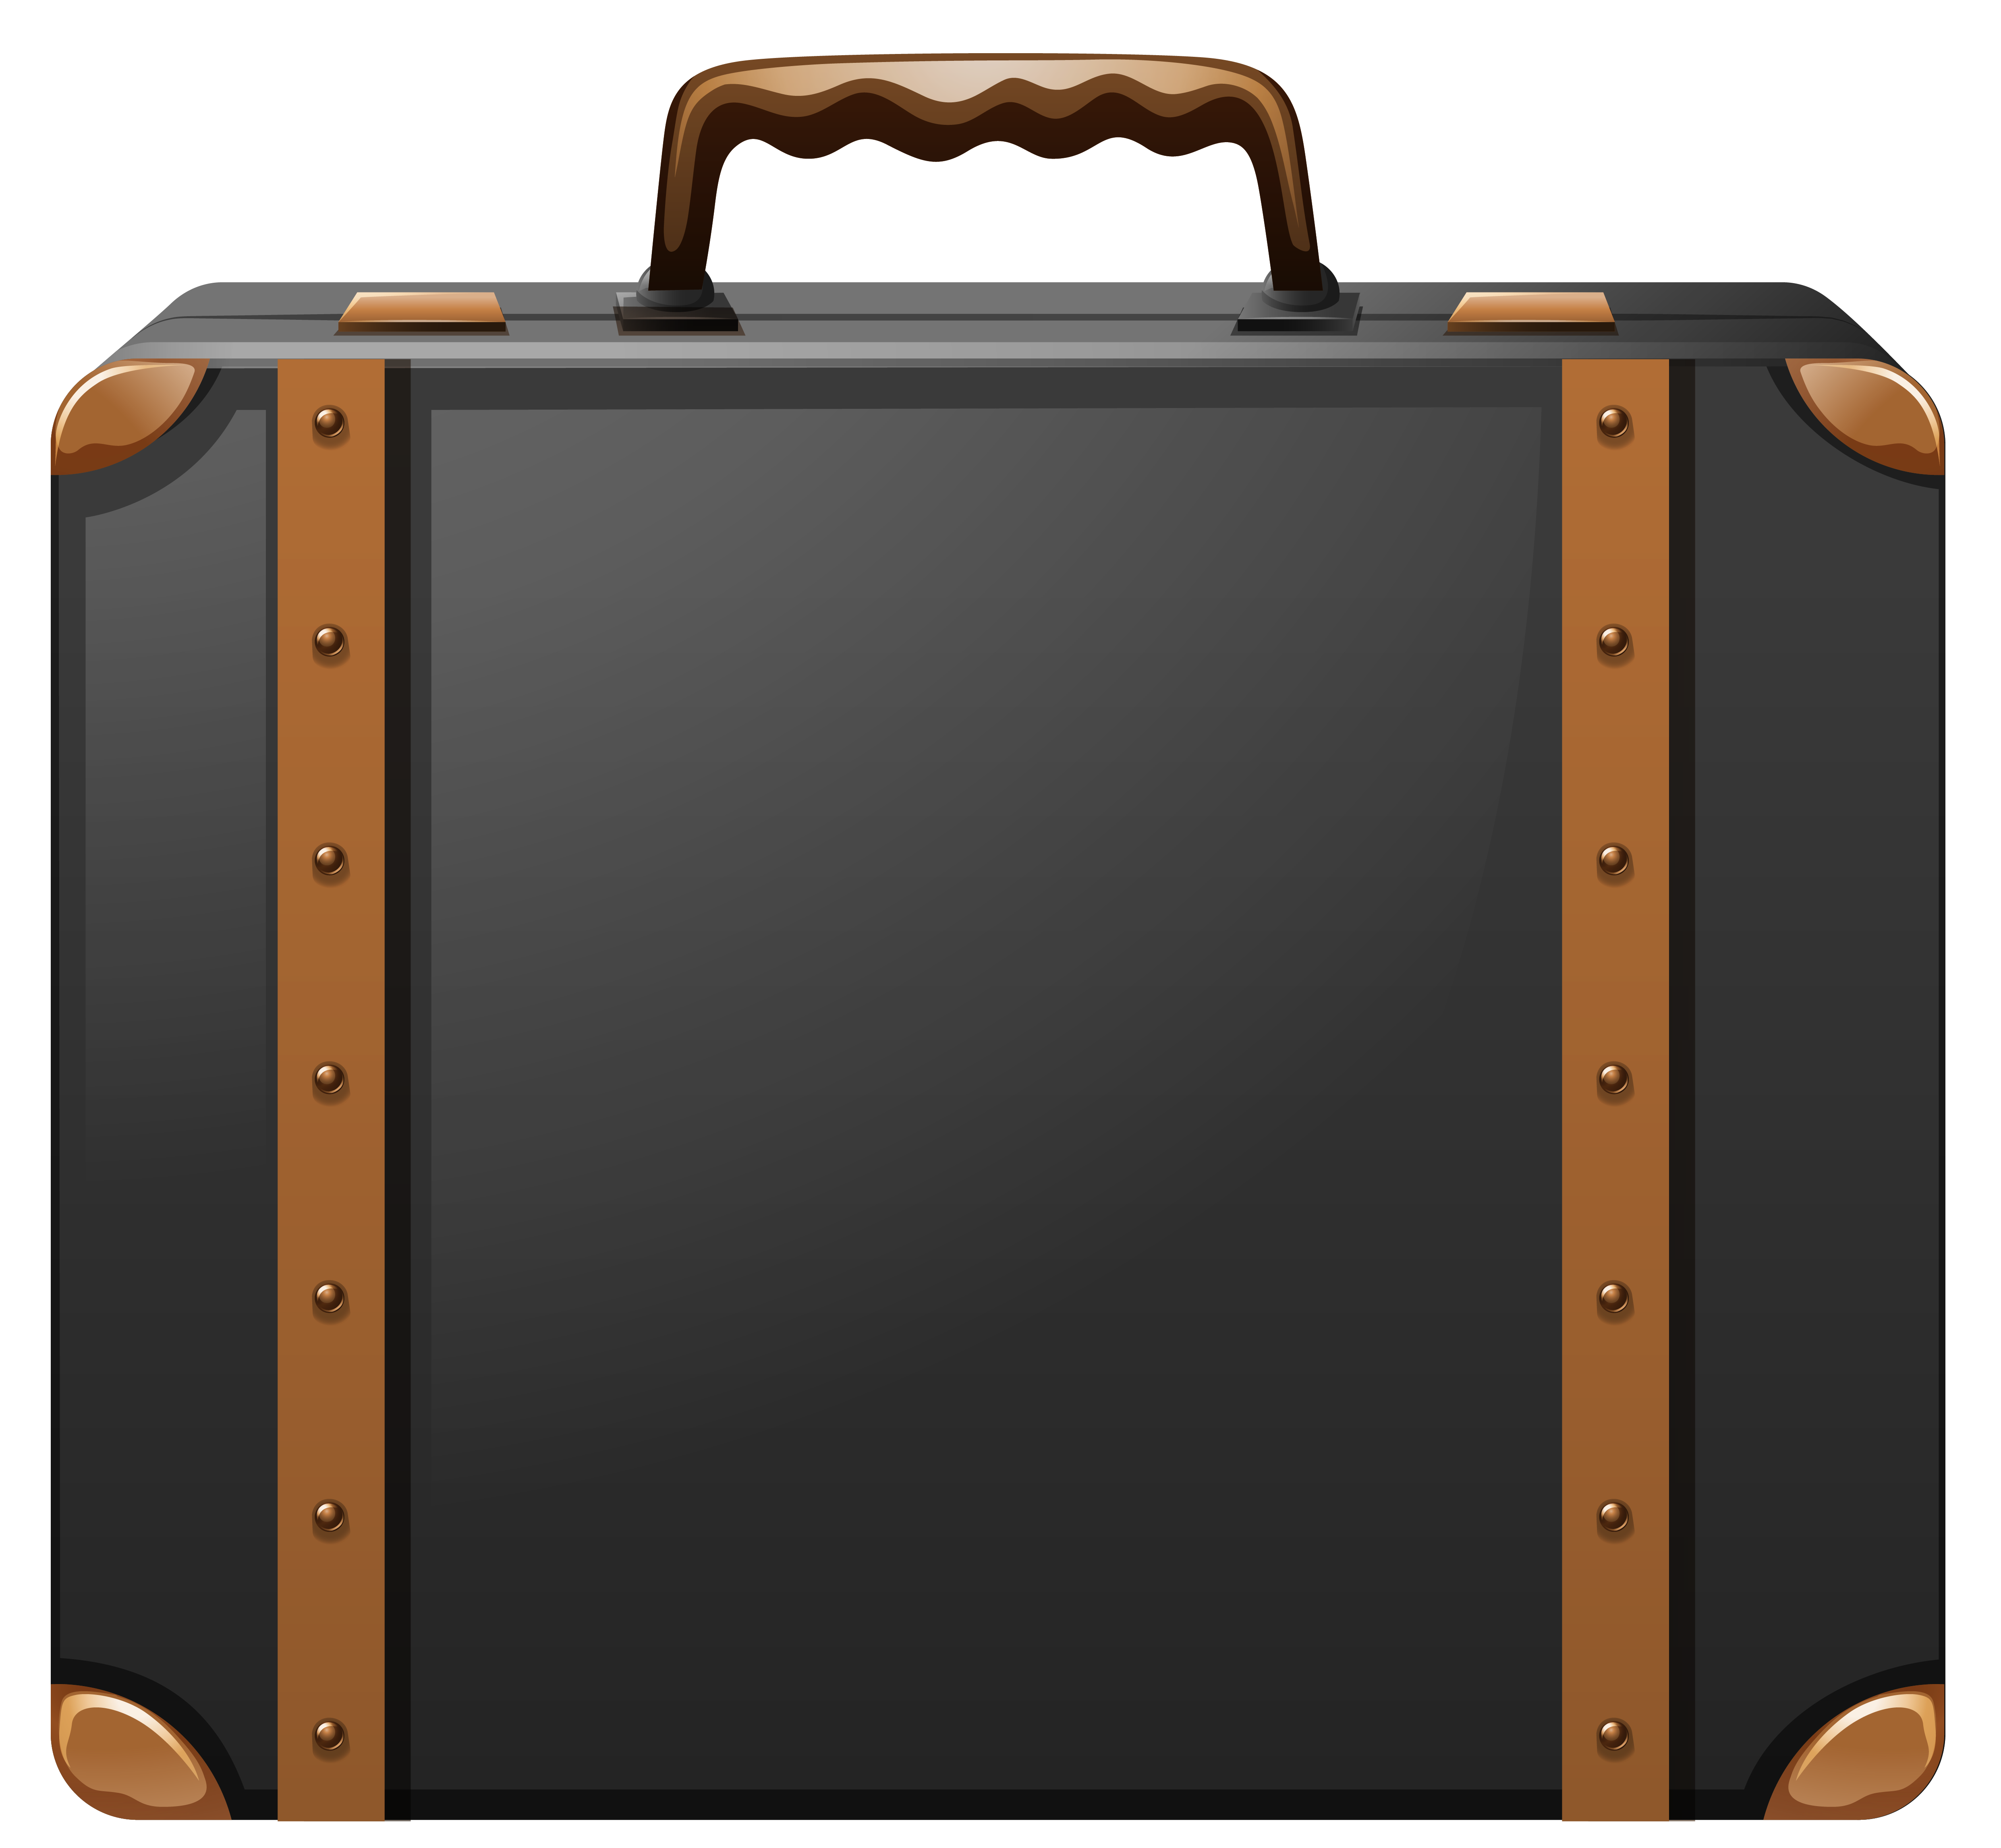 banner free stock Briefcase clipart transparent background. Black and brown suitcase